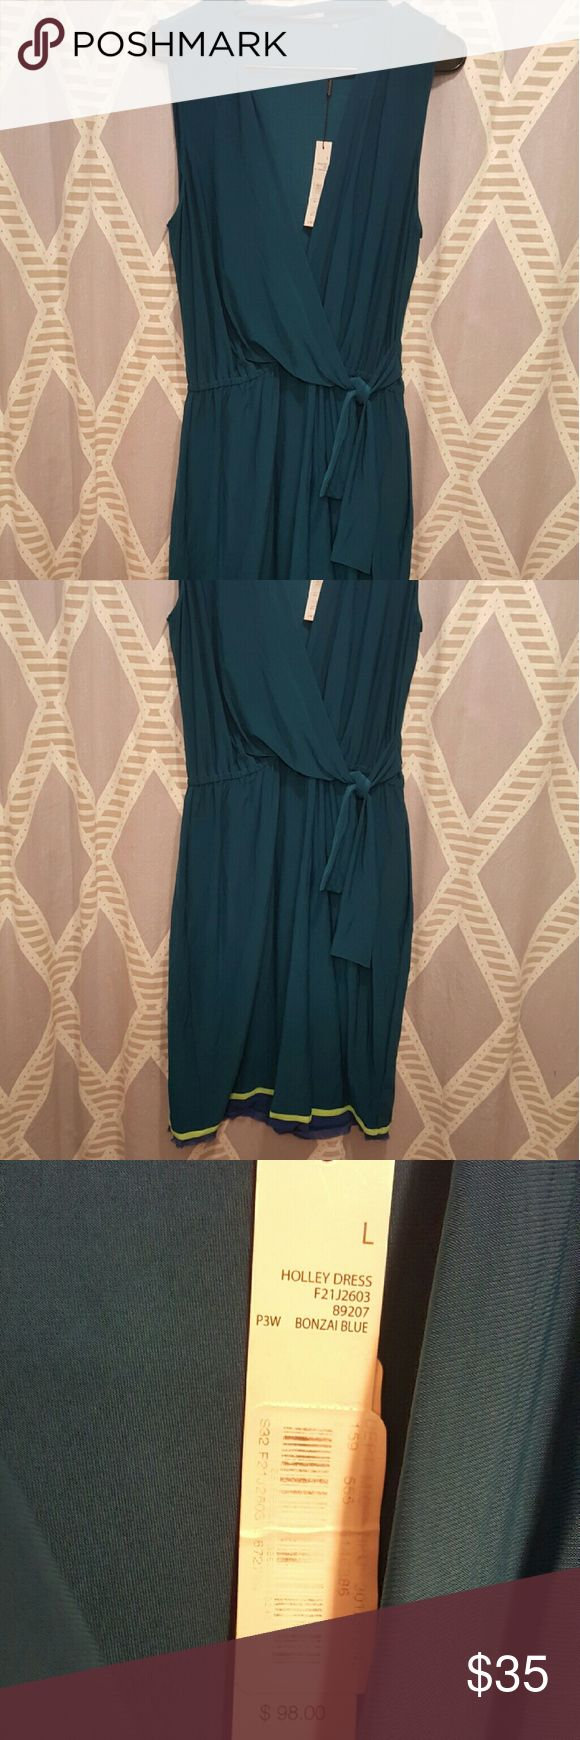 T. Tahari NWT Holley Dress NwT very soft and stretchy material. Pretty color T Tahari Dresses Midi